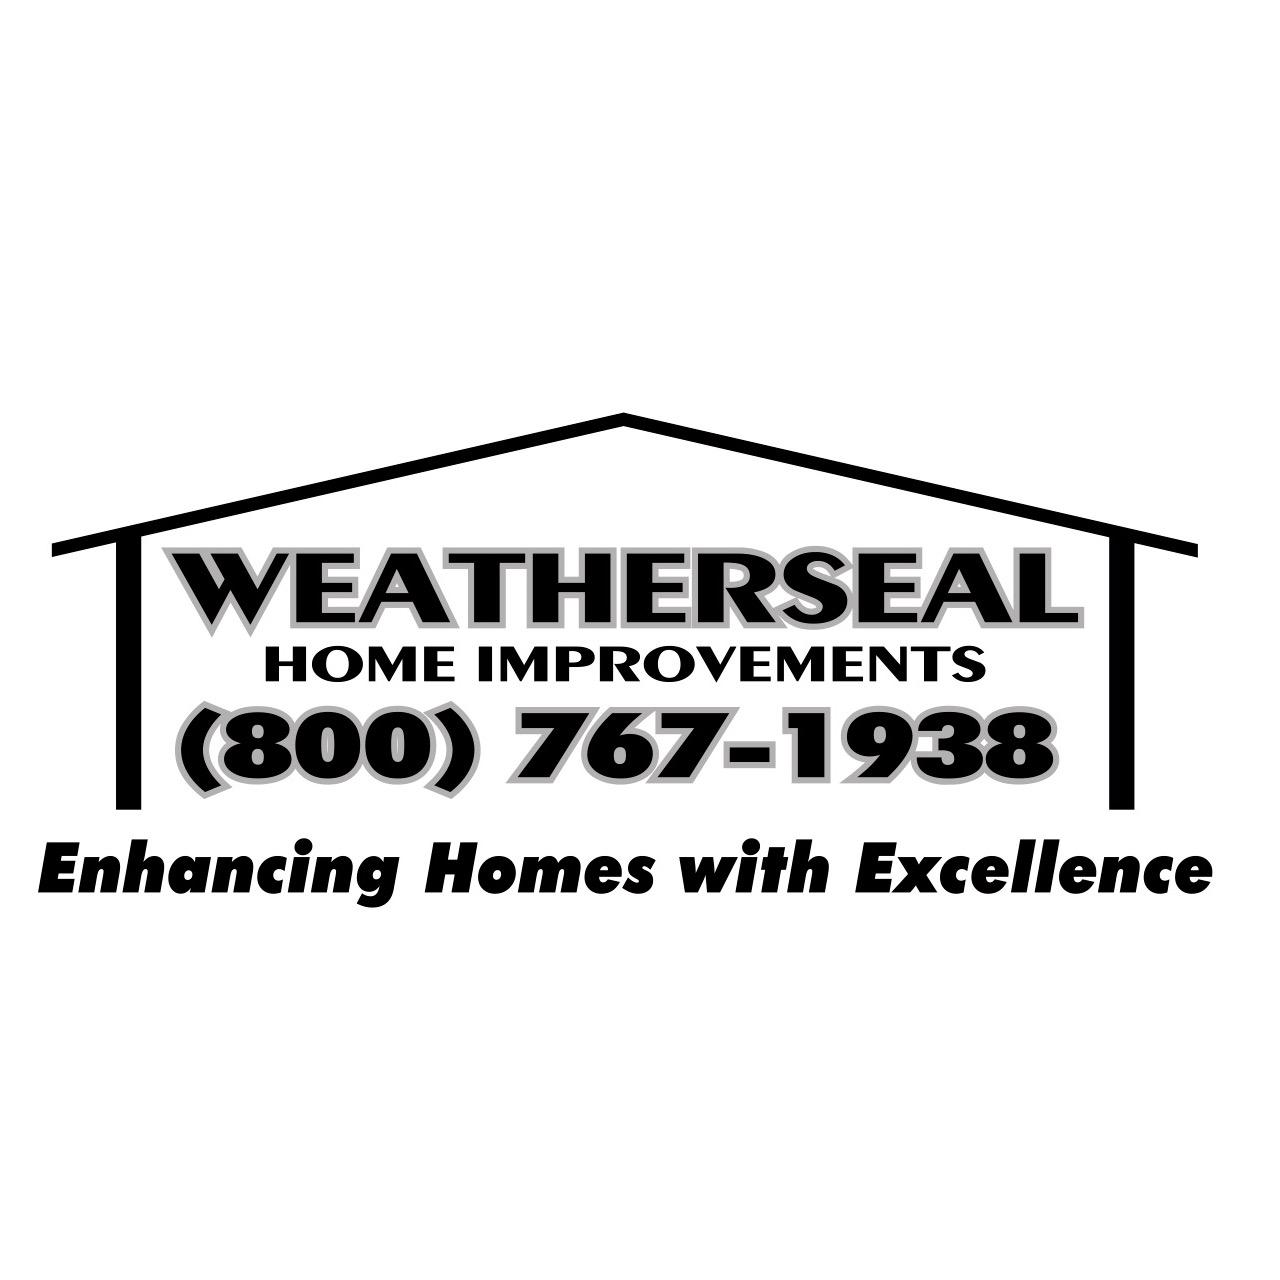 WETHERSEAL HOME IMPROVEMENTS